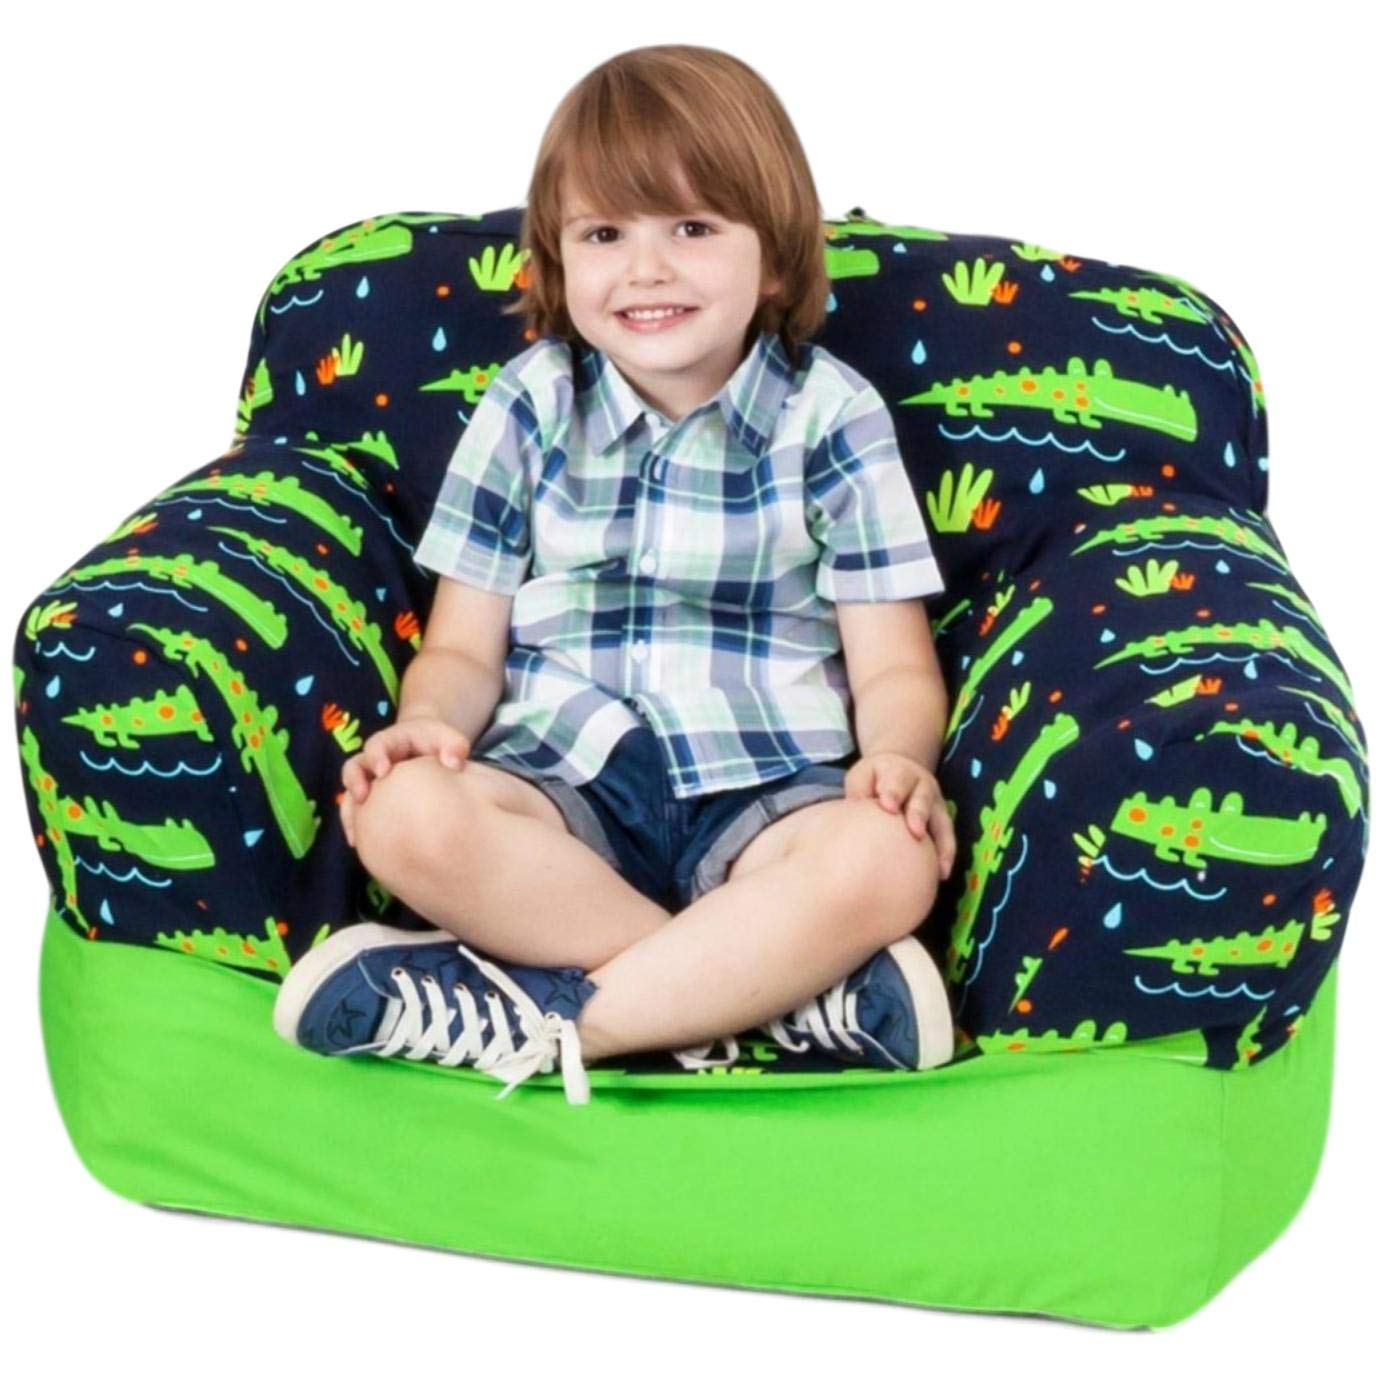 Yayme! Bean Bag Chairs for Kids | Blue Green Crocodile Alligator Bean Bag Chair | Soft Cotton Double Beanbag Cover for Children Kids Toddler | Bedroom Play Furniture for Boys | Back to School Stuff